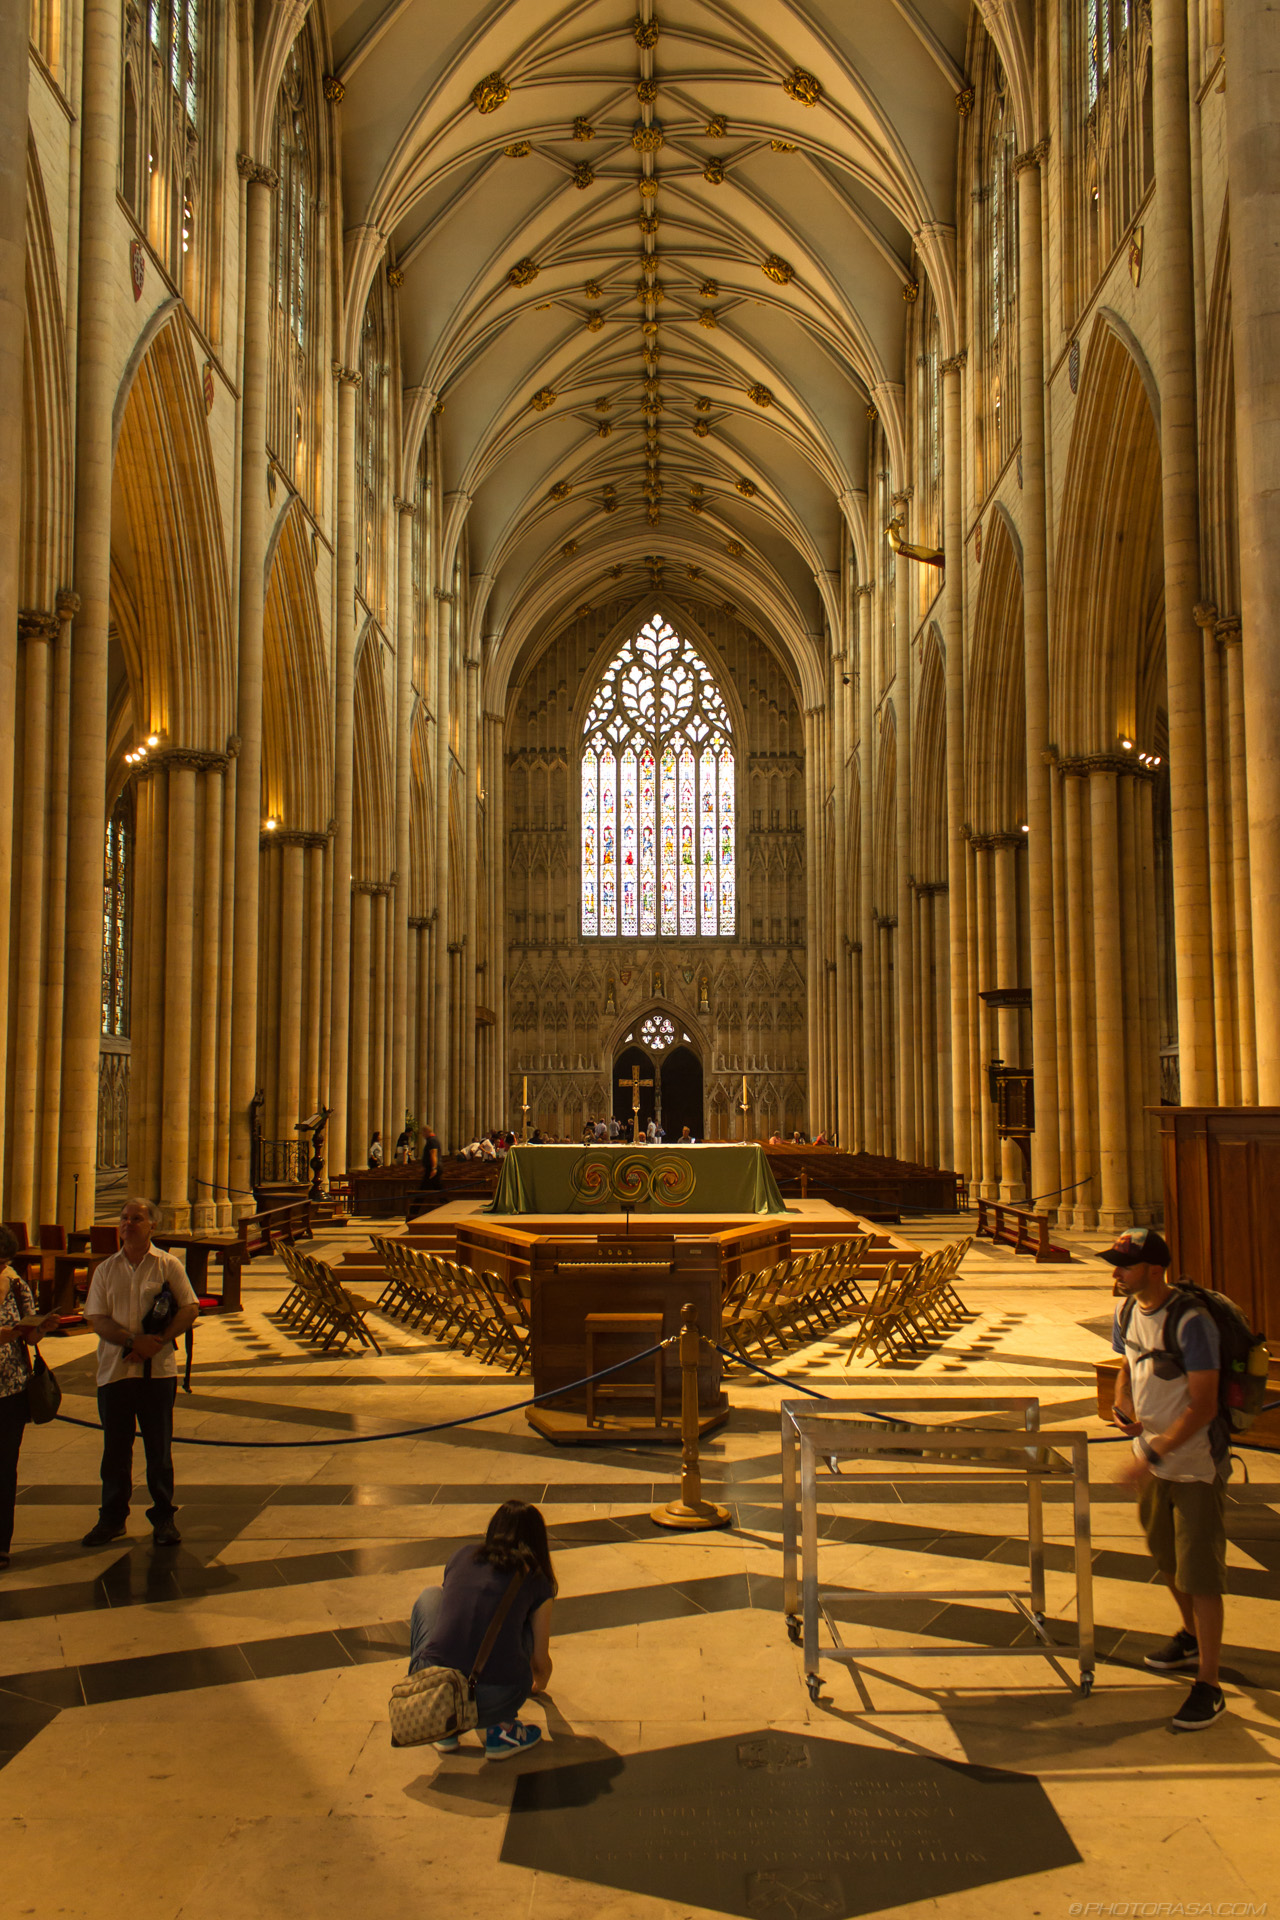 http://photorasa.com/places/yorkminster-cathedral/attachment/the-nave-from-the-east/